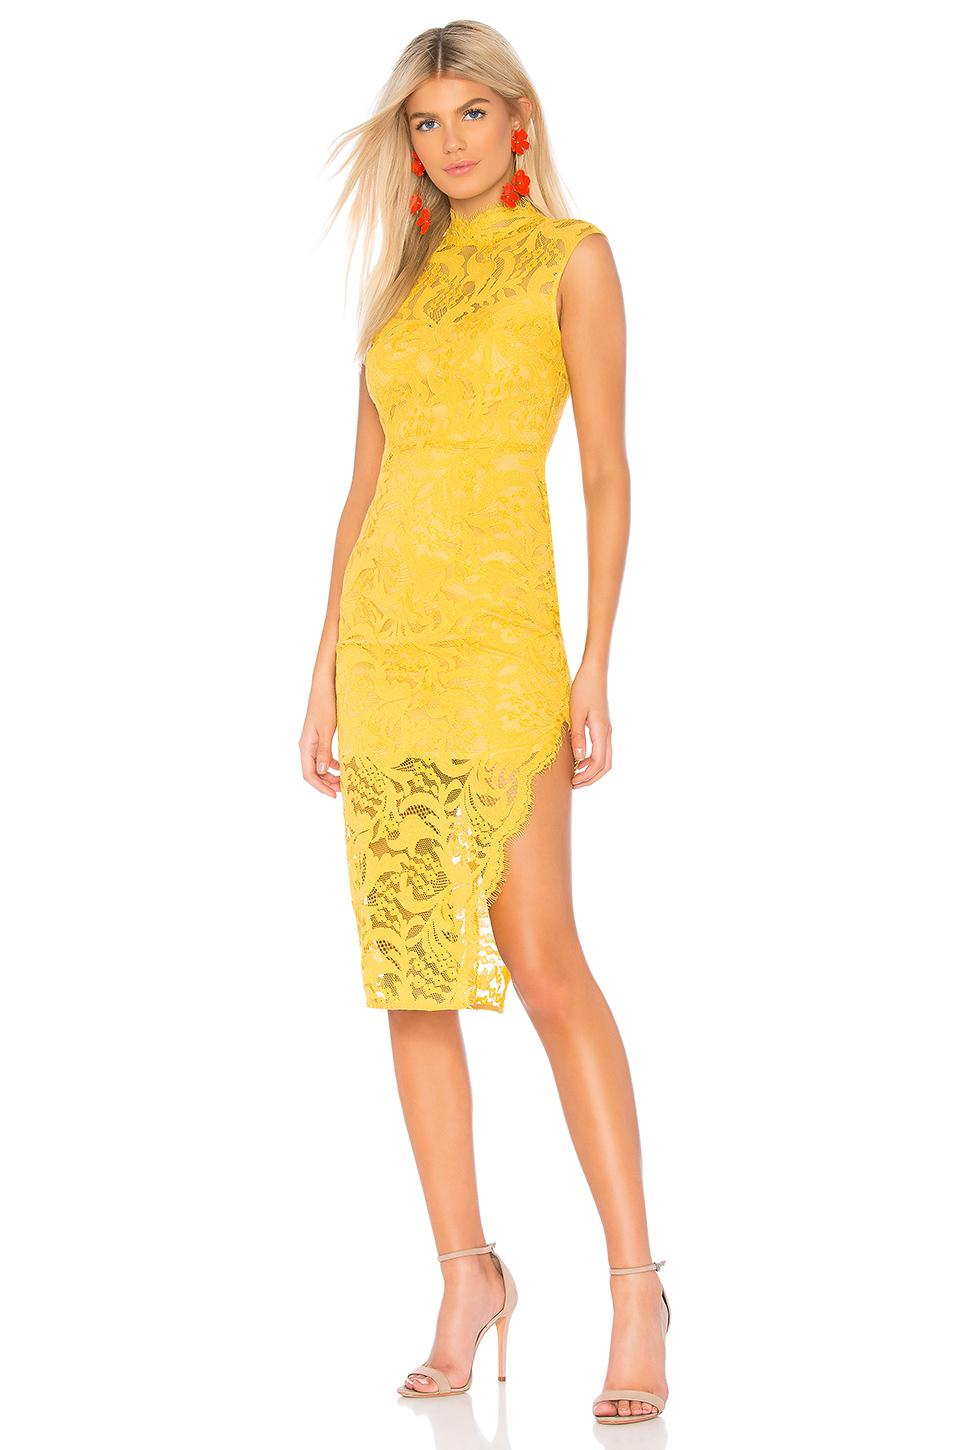 980ee1ede1531e Lyst - Aijek Melanie Cap Sleeve Dress in Yellow